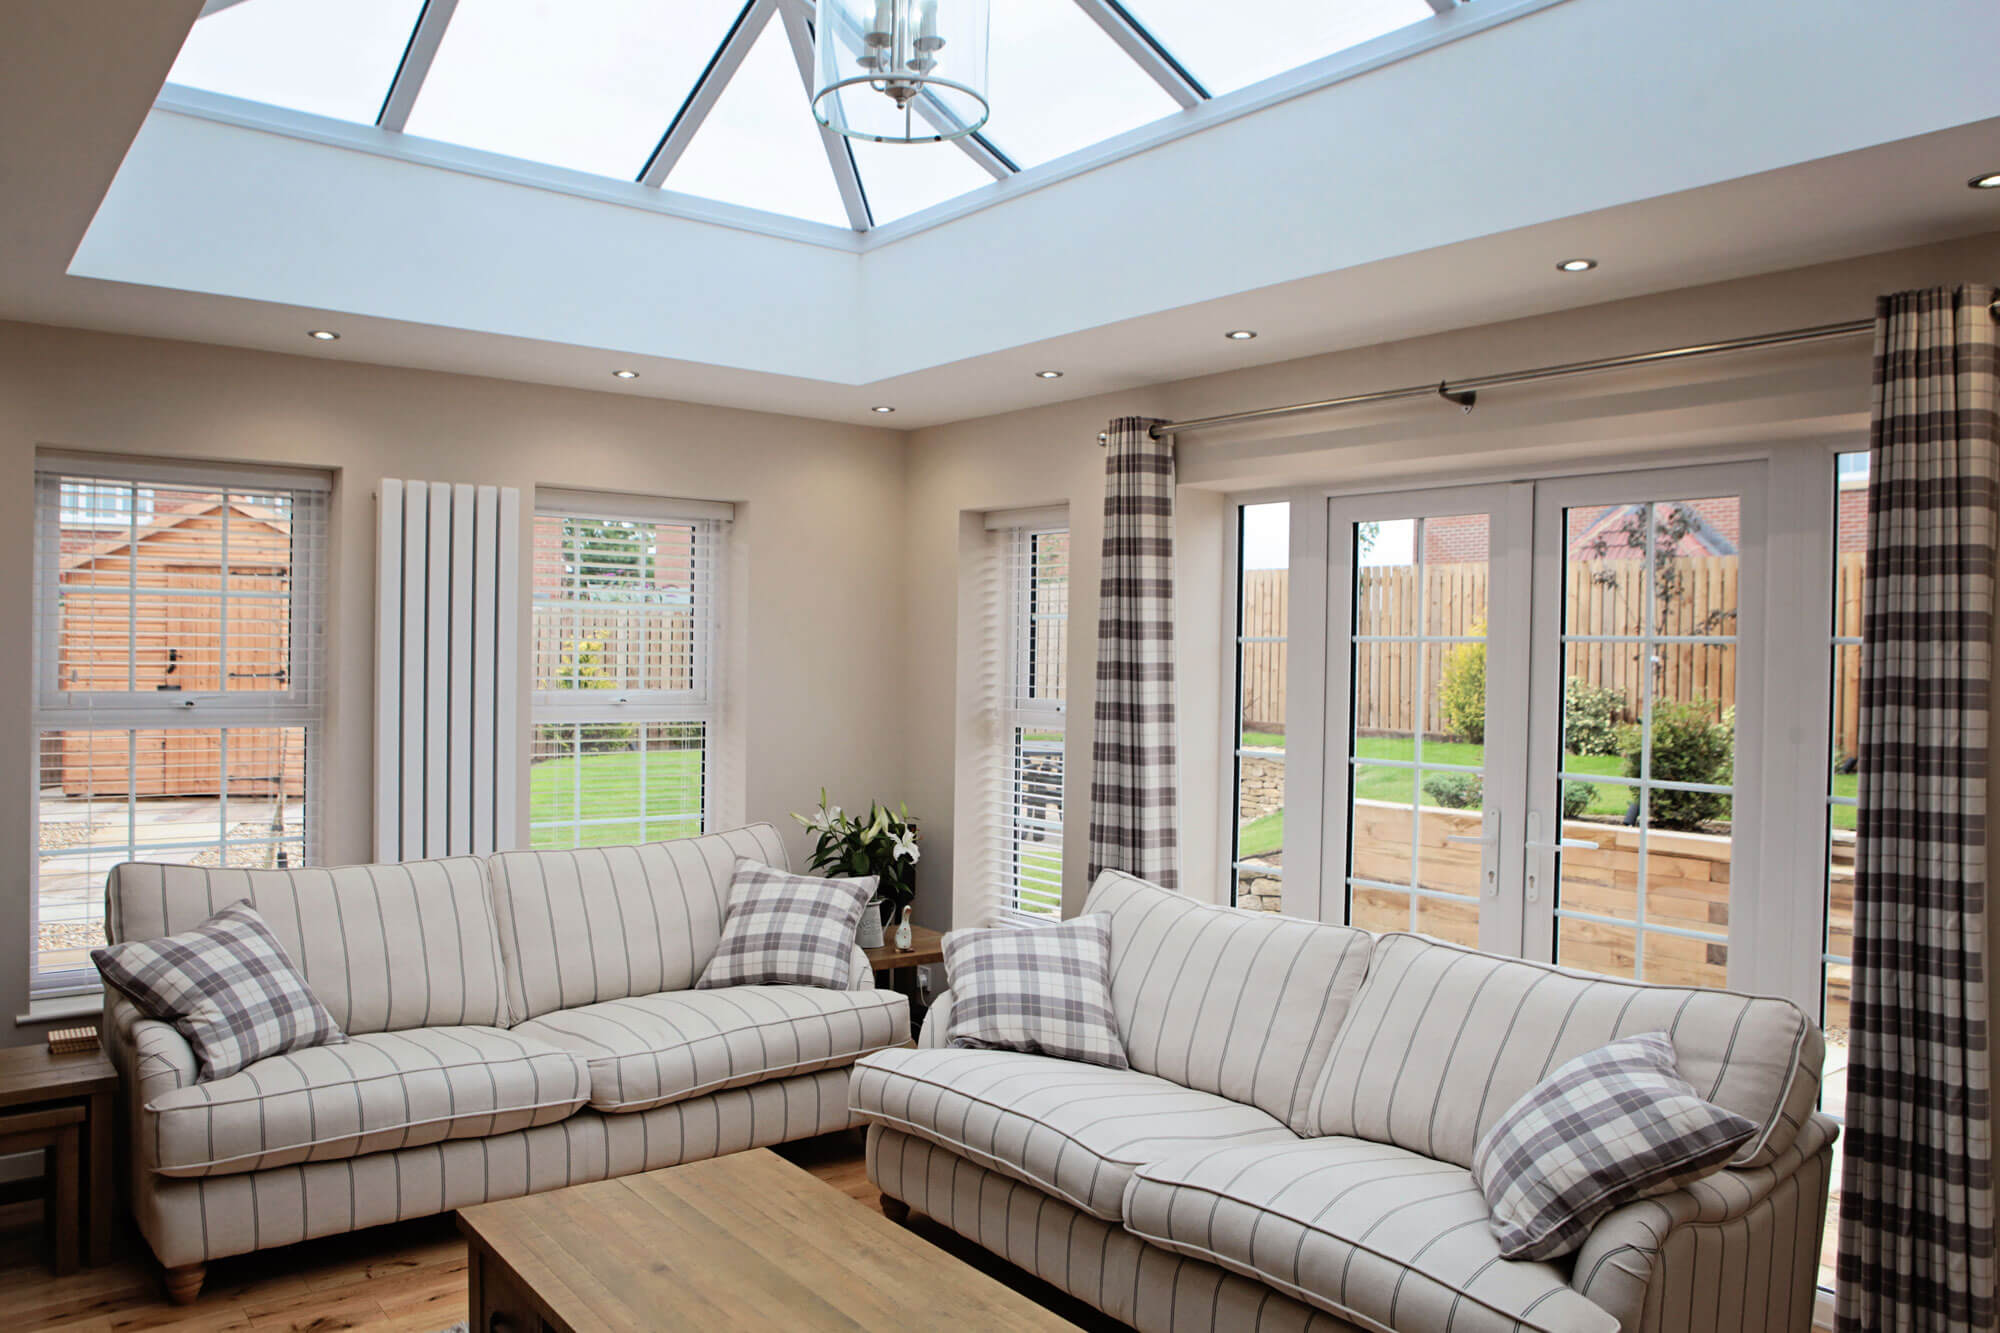 Conservatory Roofs Styles in Carmarthenshire